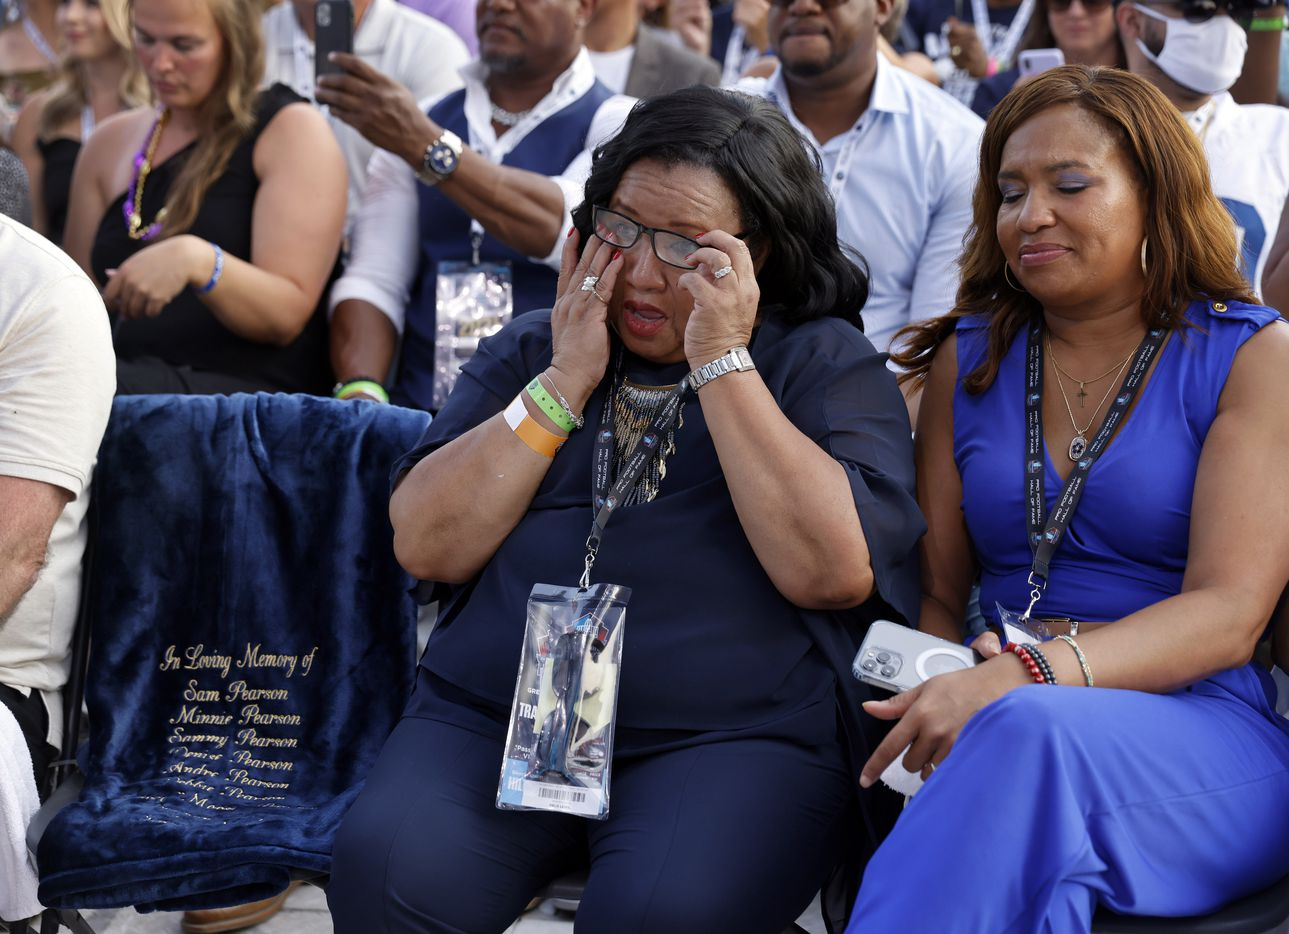 Sandra Pearson Hill (left), sister of Pro Football Hall of Fame inductee Drew Pearson of the Dallas Cowboys, wipes away tears next to an empty chair bearing the names of their parents, family members and friends who have passed away. Her oldest daughter Tori Nichole Pearson joined her as Drew acknowledged them in his acceptance speech during the Class of 2021 enshrinement ceremony at Tom Benson Hall of Fame Stadium in Canton, Ohio, Sunday, August 8, 2021. (Tom Fox/The Dallas Morning News)